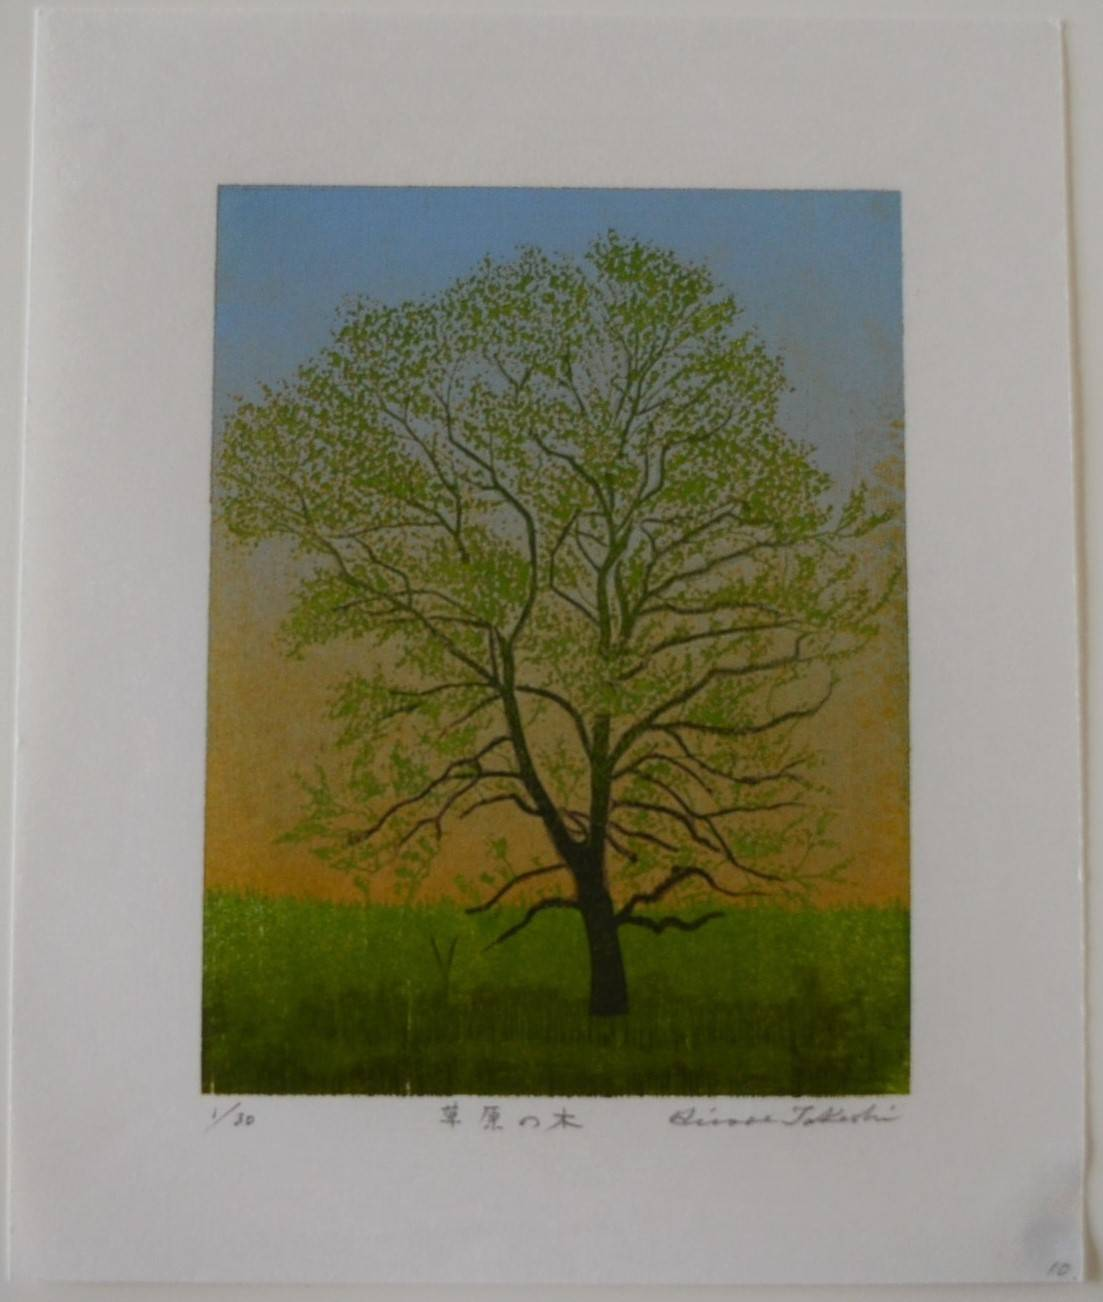 Takashi Hirose: #P4526 SOGEN NO KI - TREE IN THE FIELD